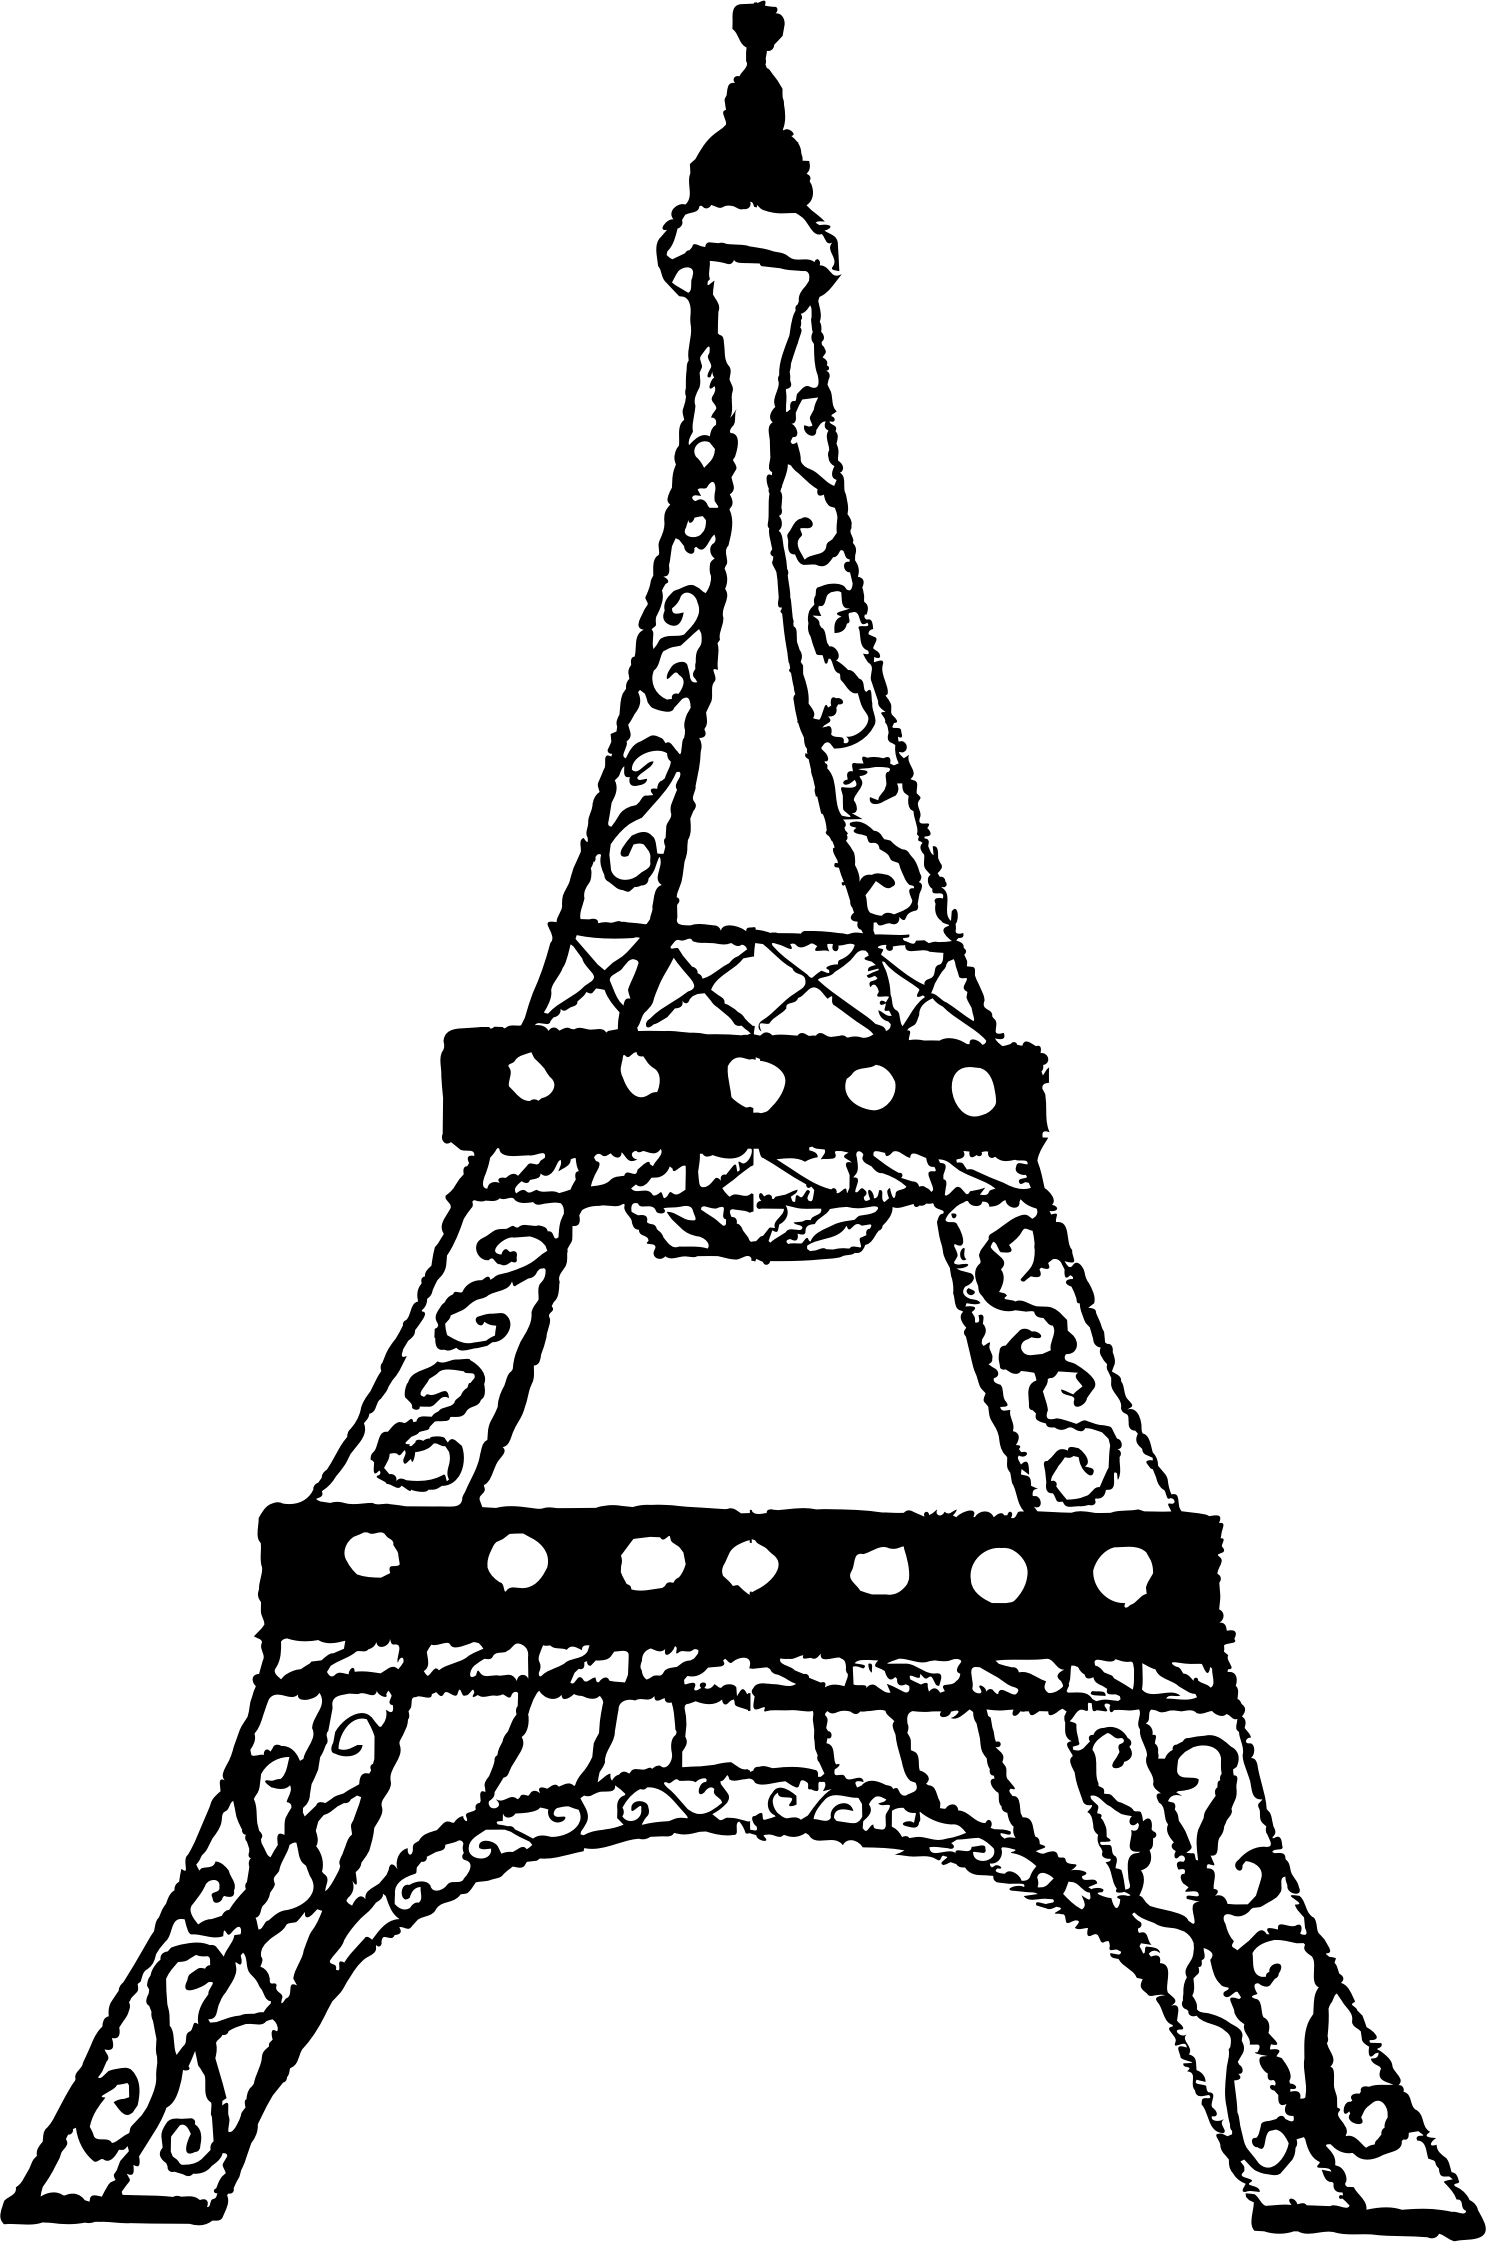 Eiffel tower with crown clipart clip Eiffel Tower Drawing Steps at GetDrawings.com   Free for personal ... clip